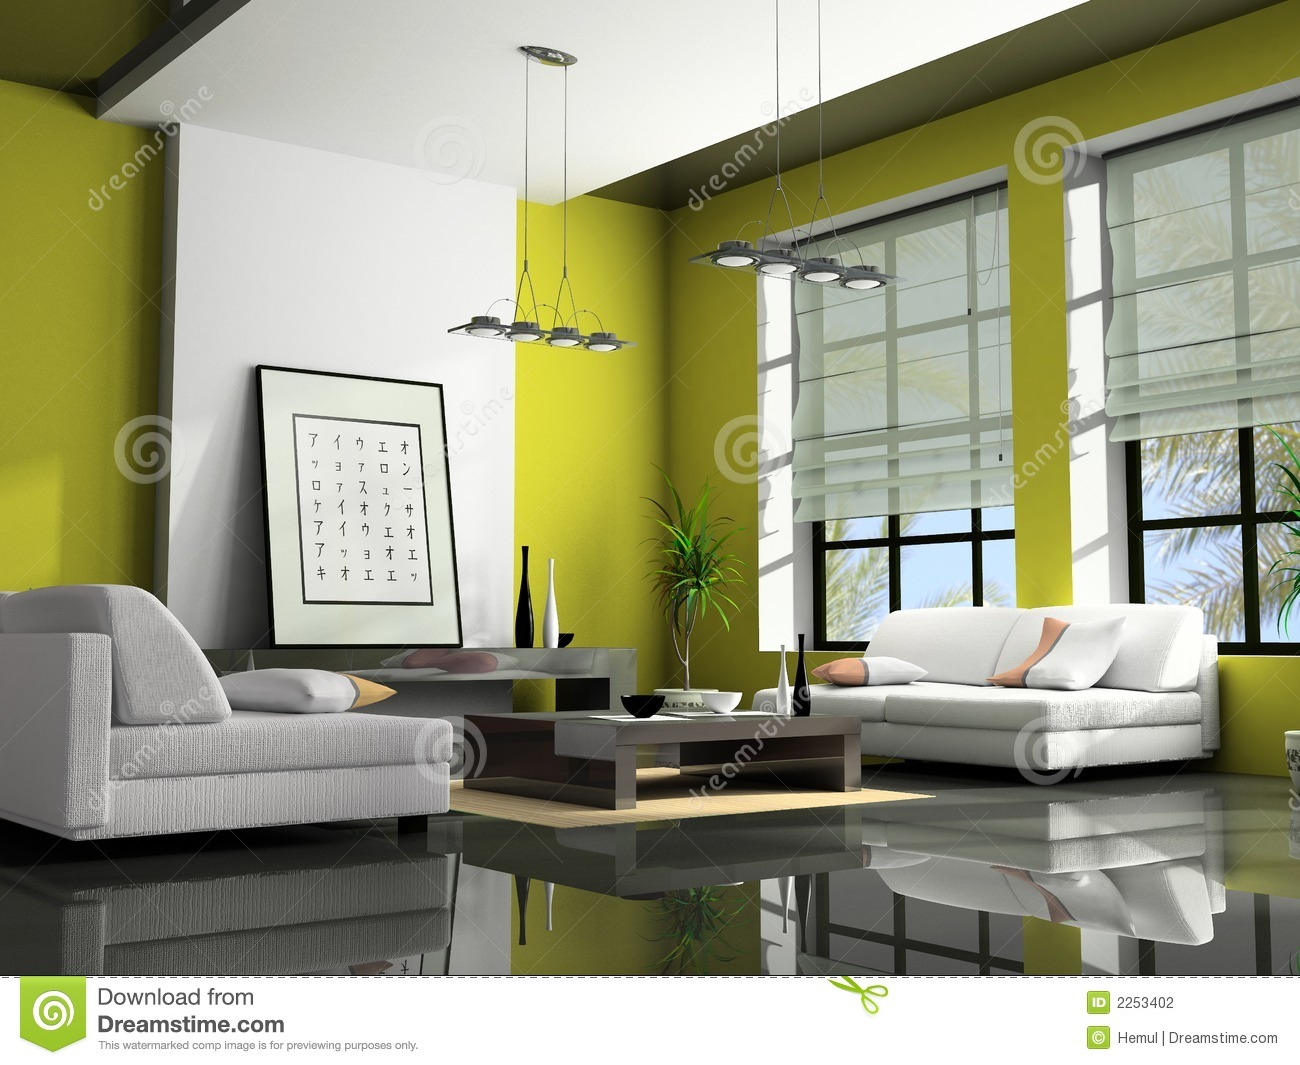 Home interior 3d rendering stock photo image of for 3d interior